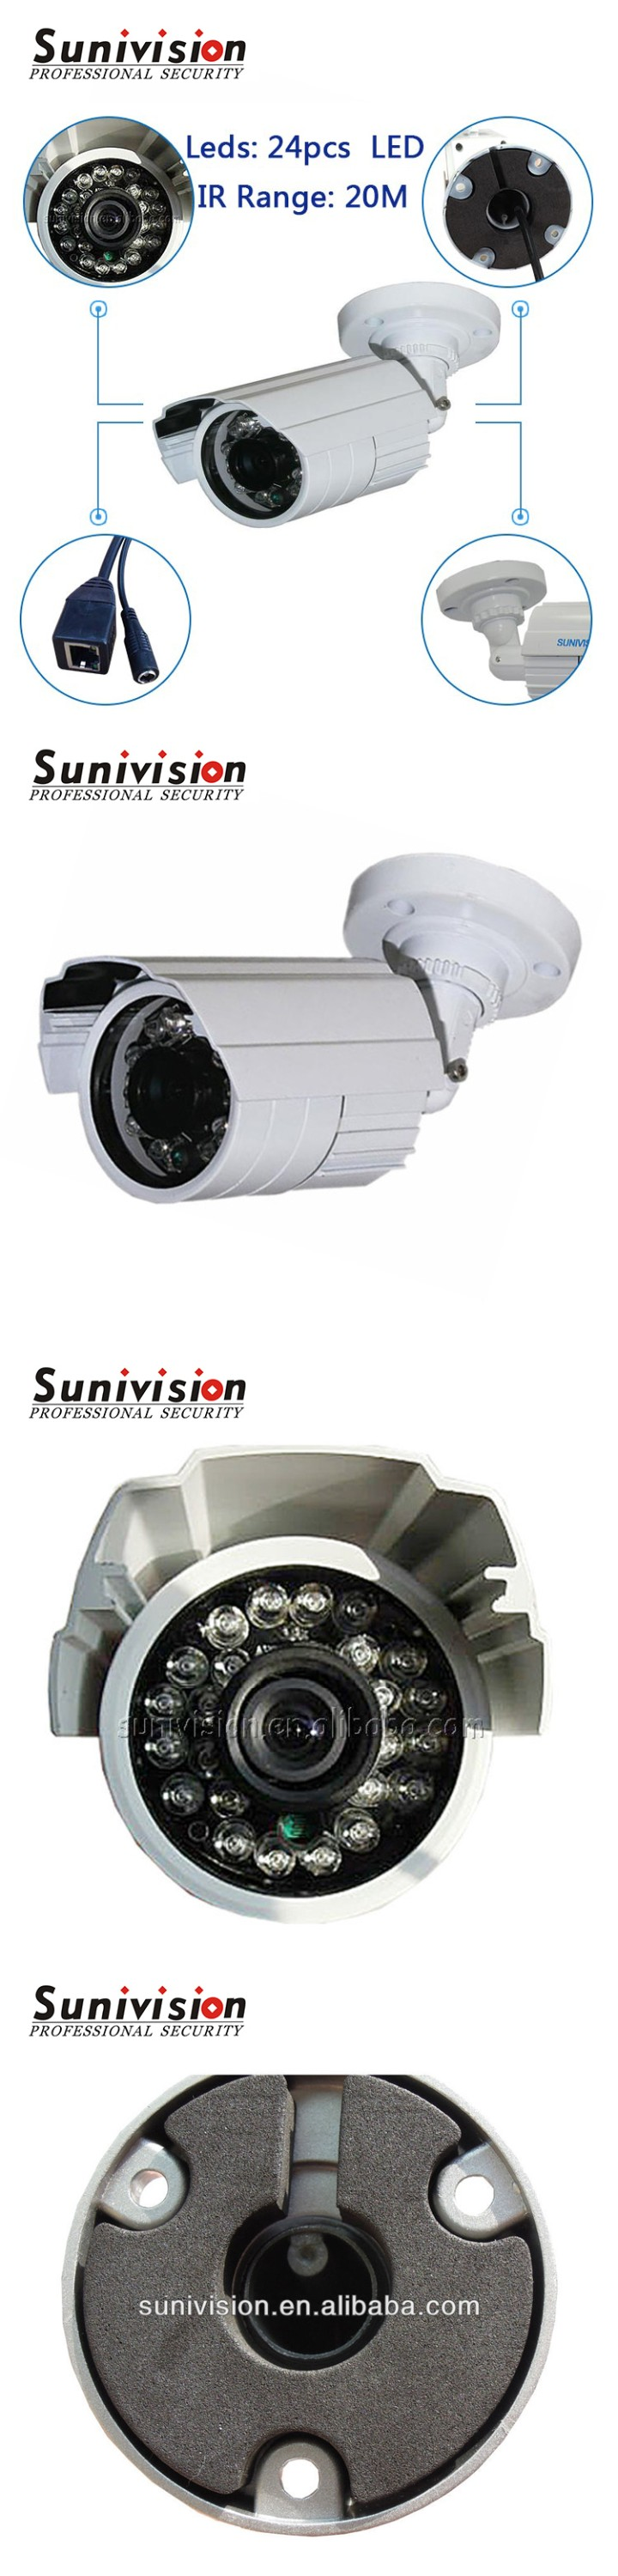 New model China 24pcs IR leds AHD 720P metal bullet cctv camera 1080N dvr kit